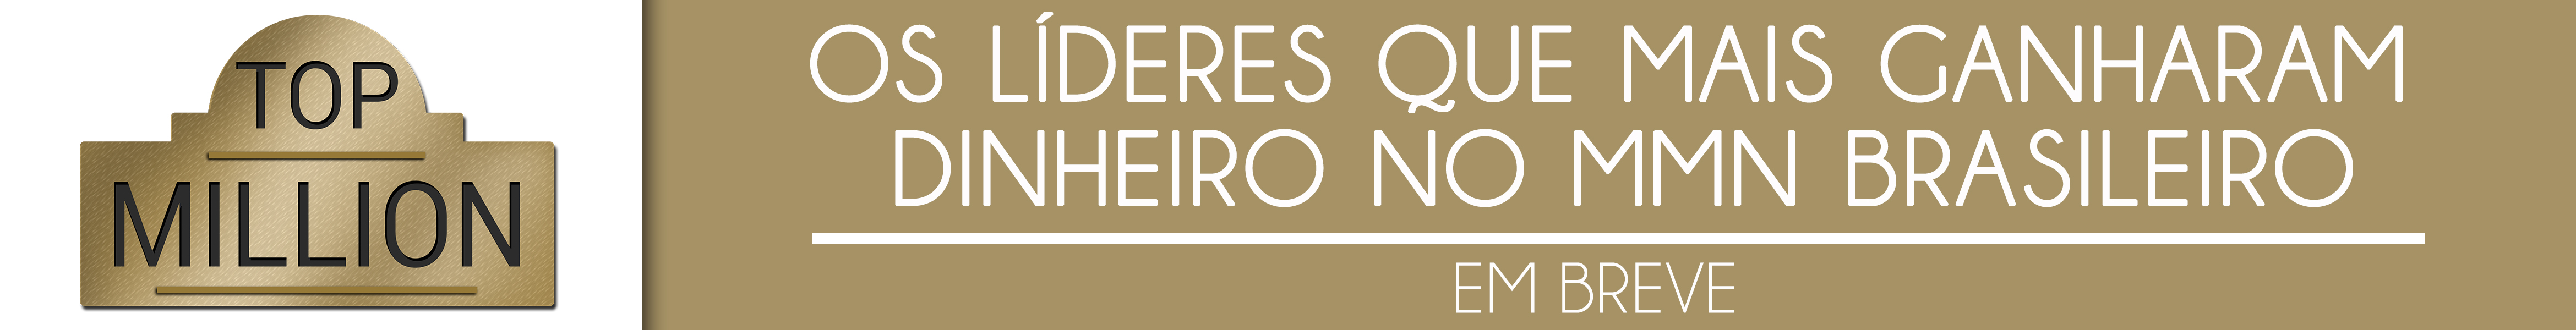 topo-top-million